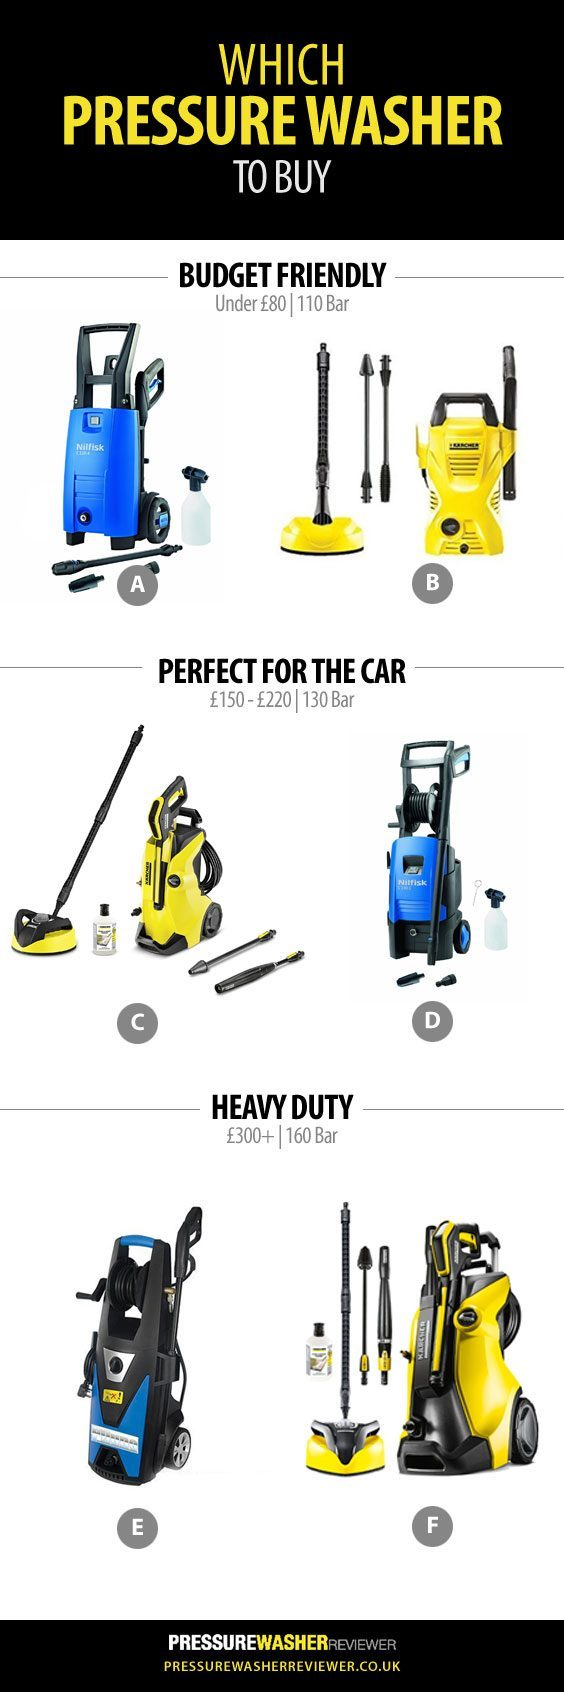 Pressure Washer Infographic